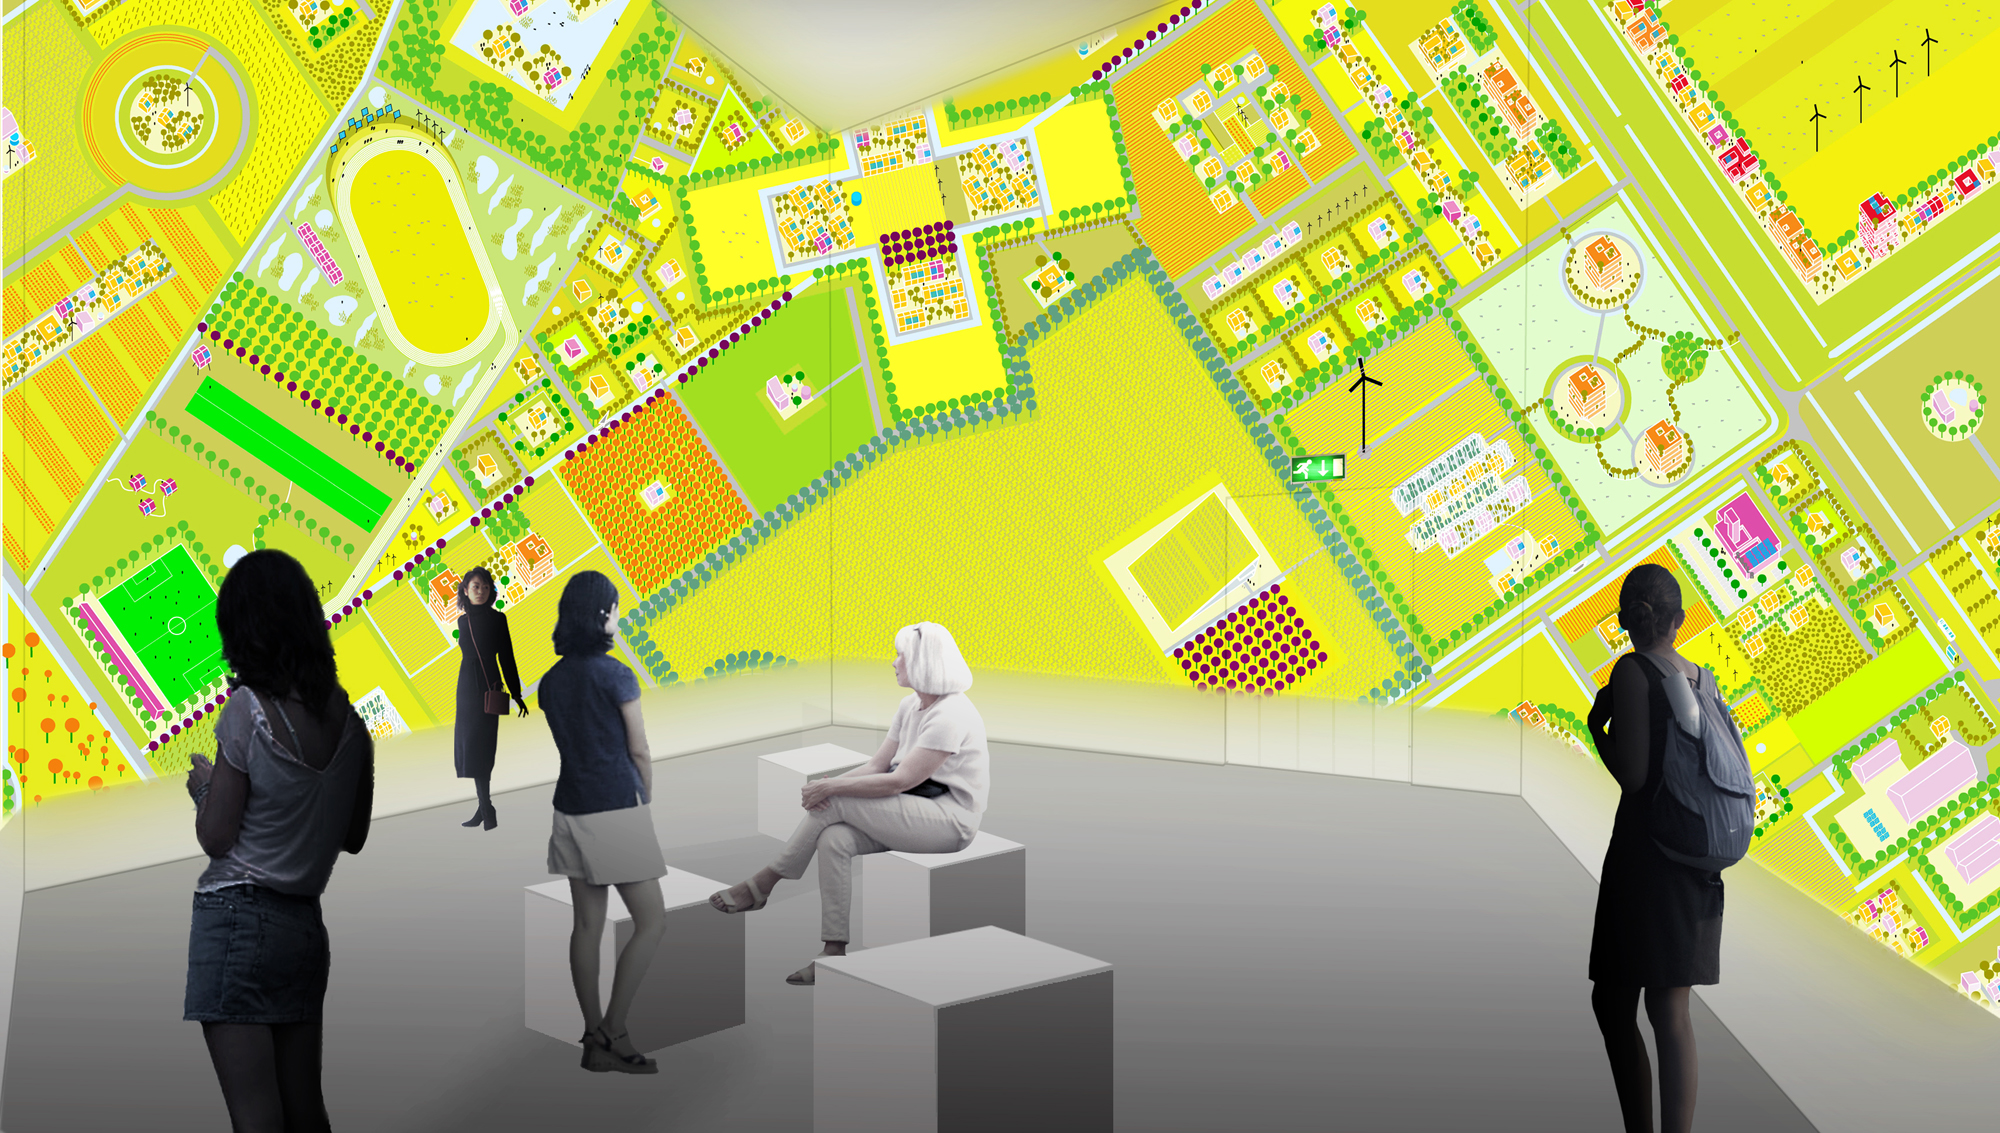 Bienal de Veneza 2012: 'Freeland' e 'Porous City' / MVRDV + the why factory, Freeland / MVRDV e The Why Factory